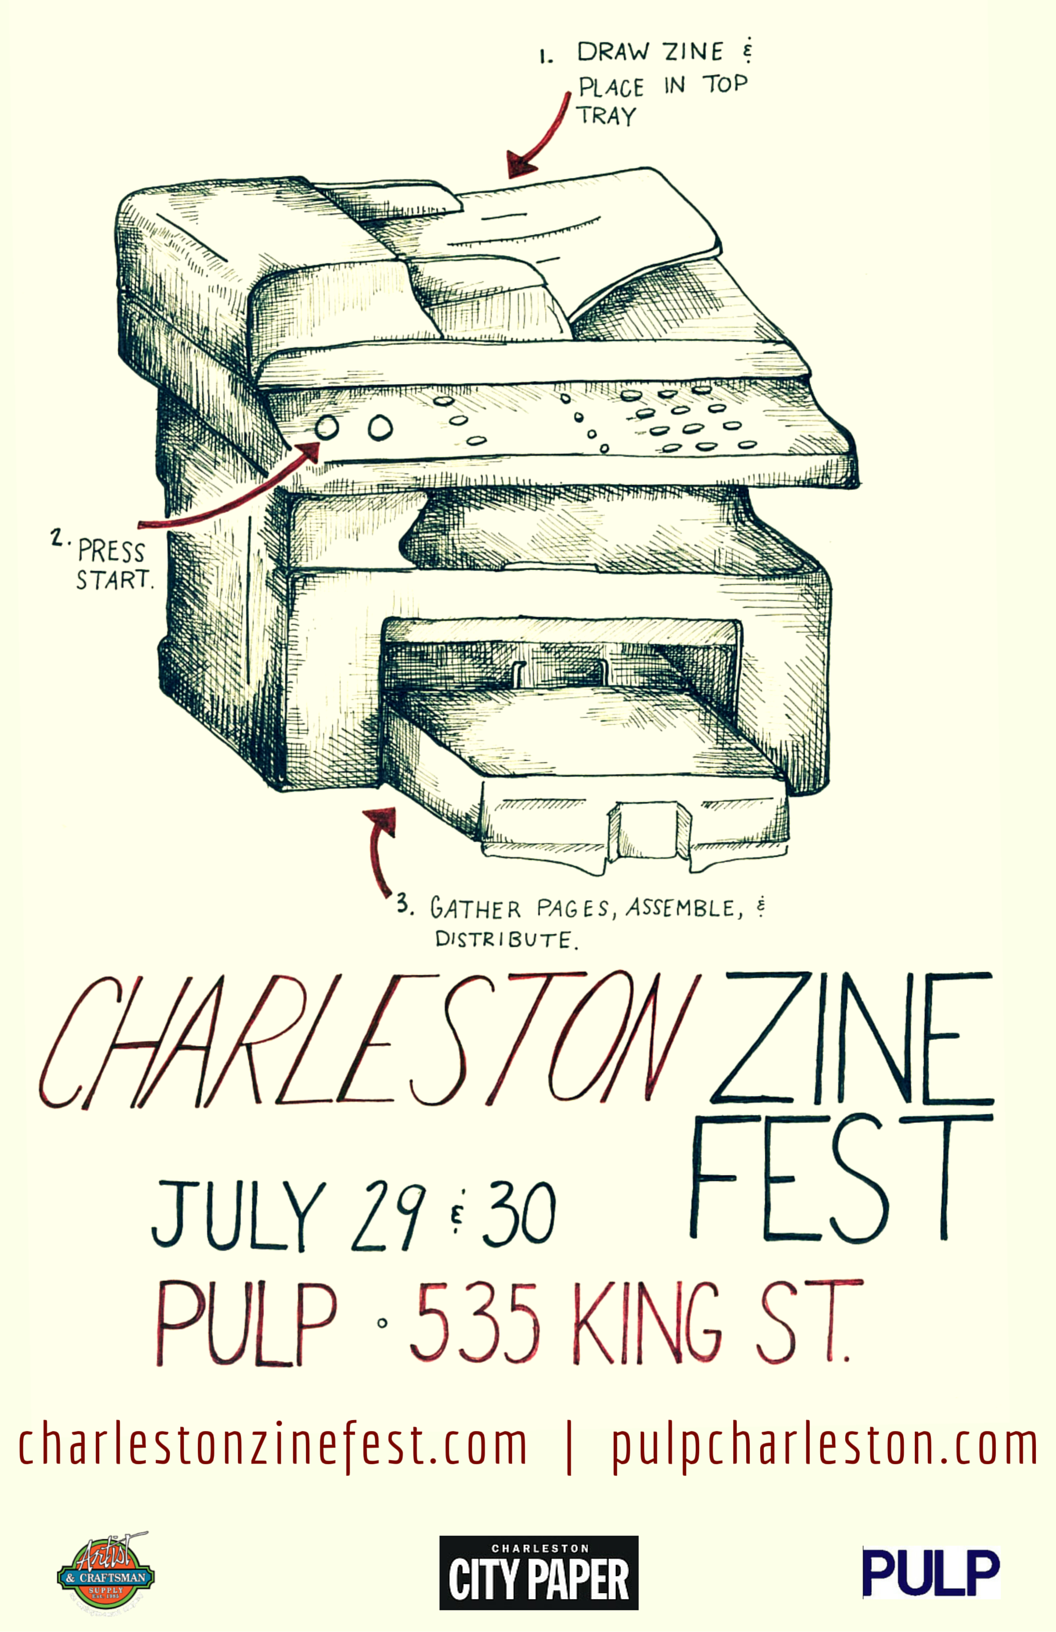 Zine Fest drawing talent from Southeast in handcrafting zines